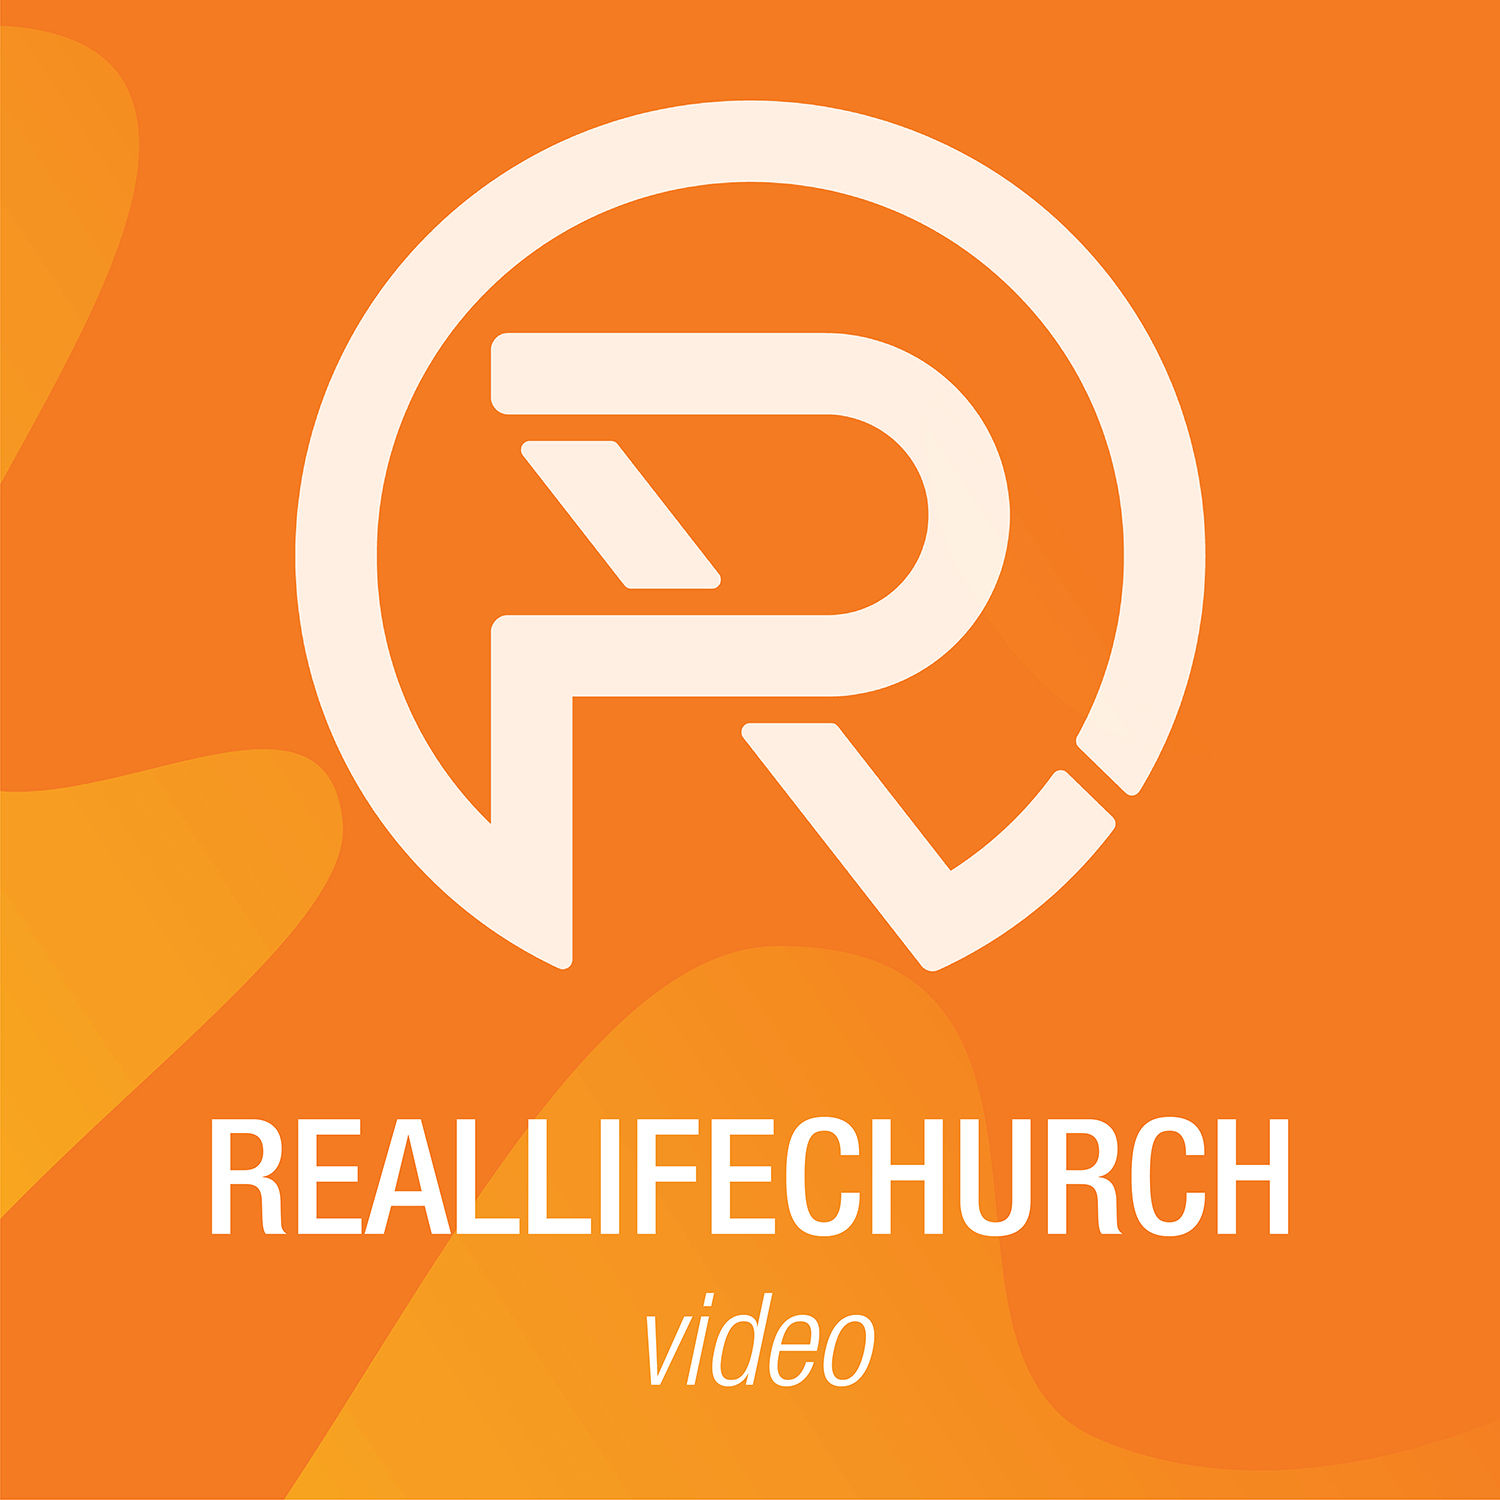 Real Life Church: Video